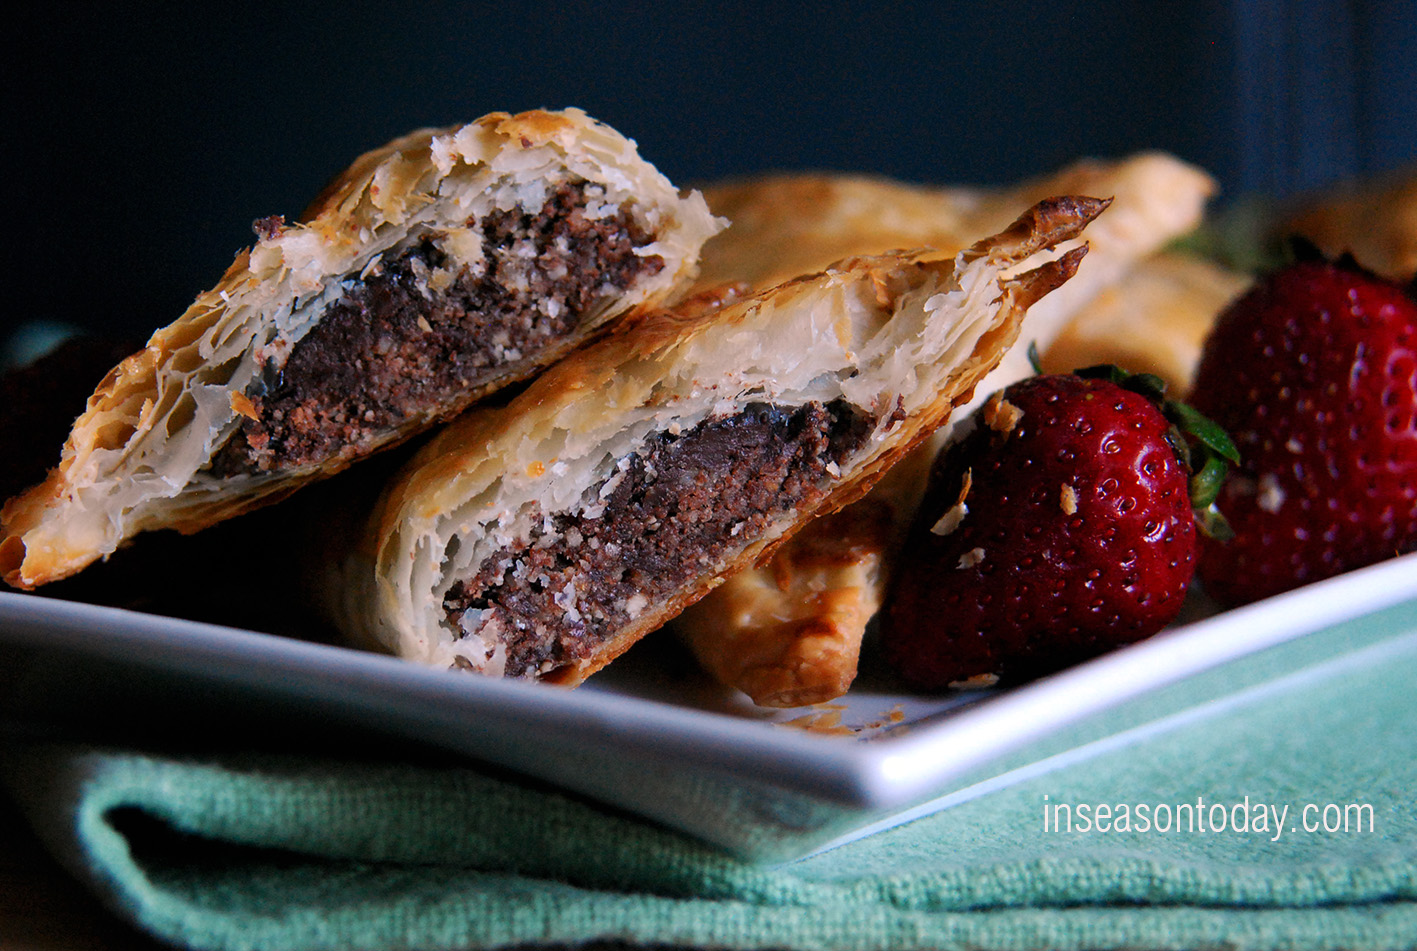 Chocolate Hazelnut Turnovers 4